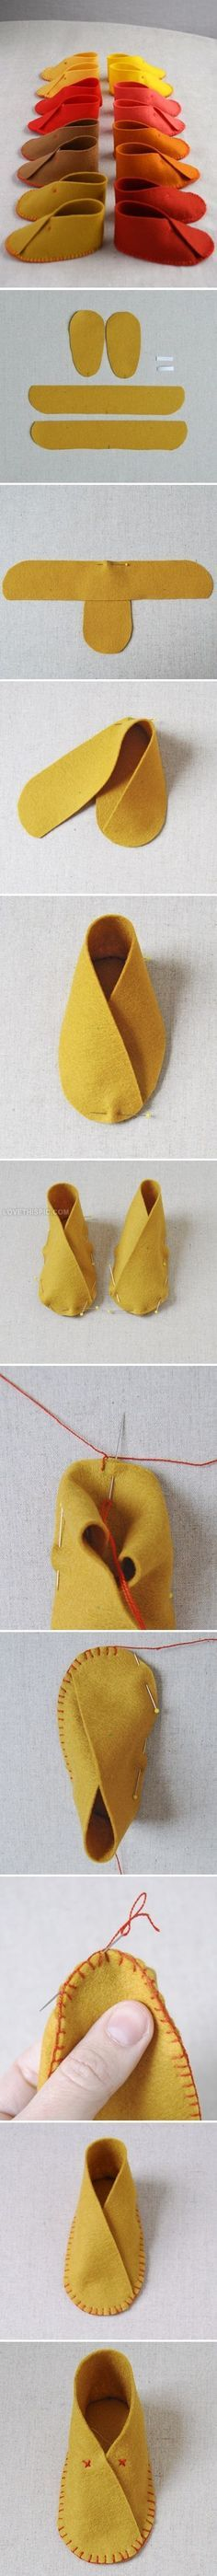 DIY Baby Shoes shoes diy diy ideas diy crafts craft clothes craft shoes diy shoes diy clothes easy crafts baby crafts craft gifts diy gifts easy diy by ladybutterfly Baby Crafts, Felt Crafts, Fabric Crafts, Sewing Crafts, Sewing Projects, Sewing For Kids, Baby Sewing, Fabric Sewing, Felt Baby Shoes